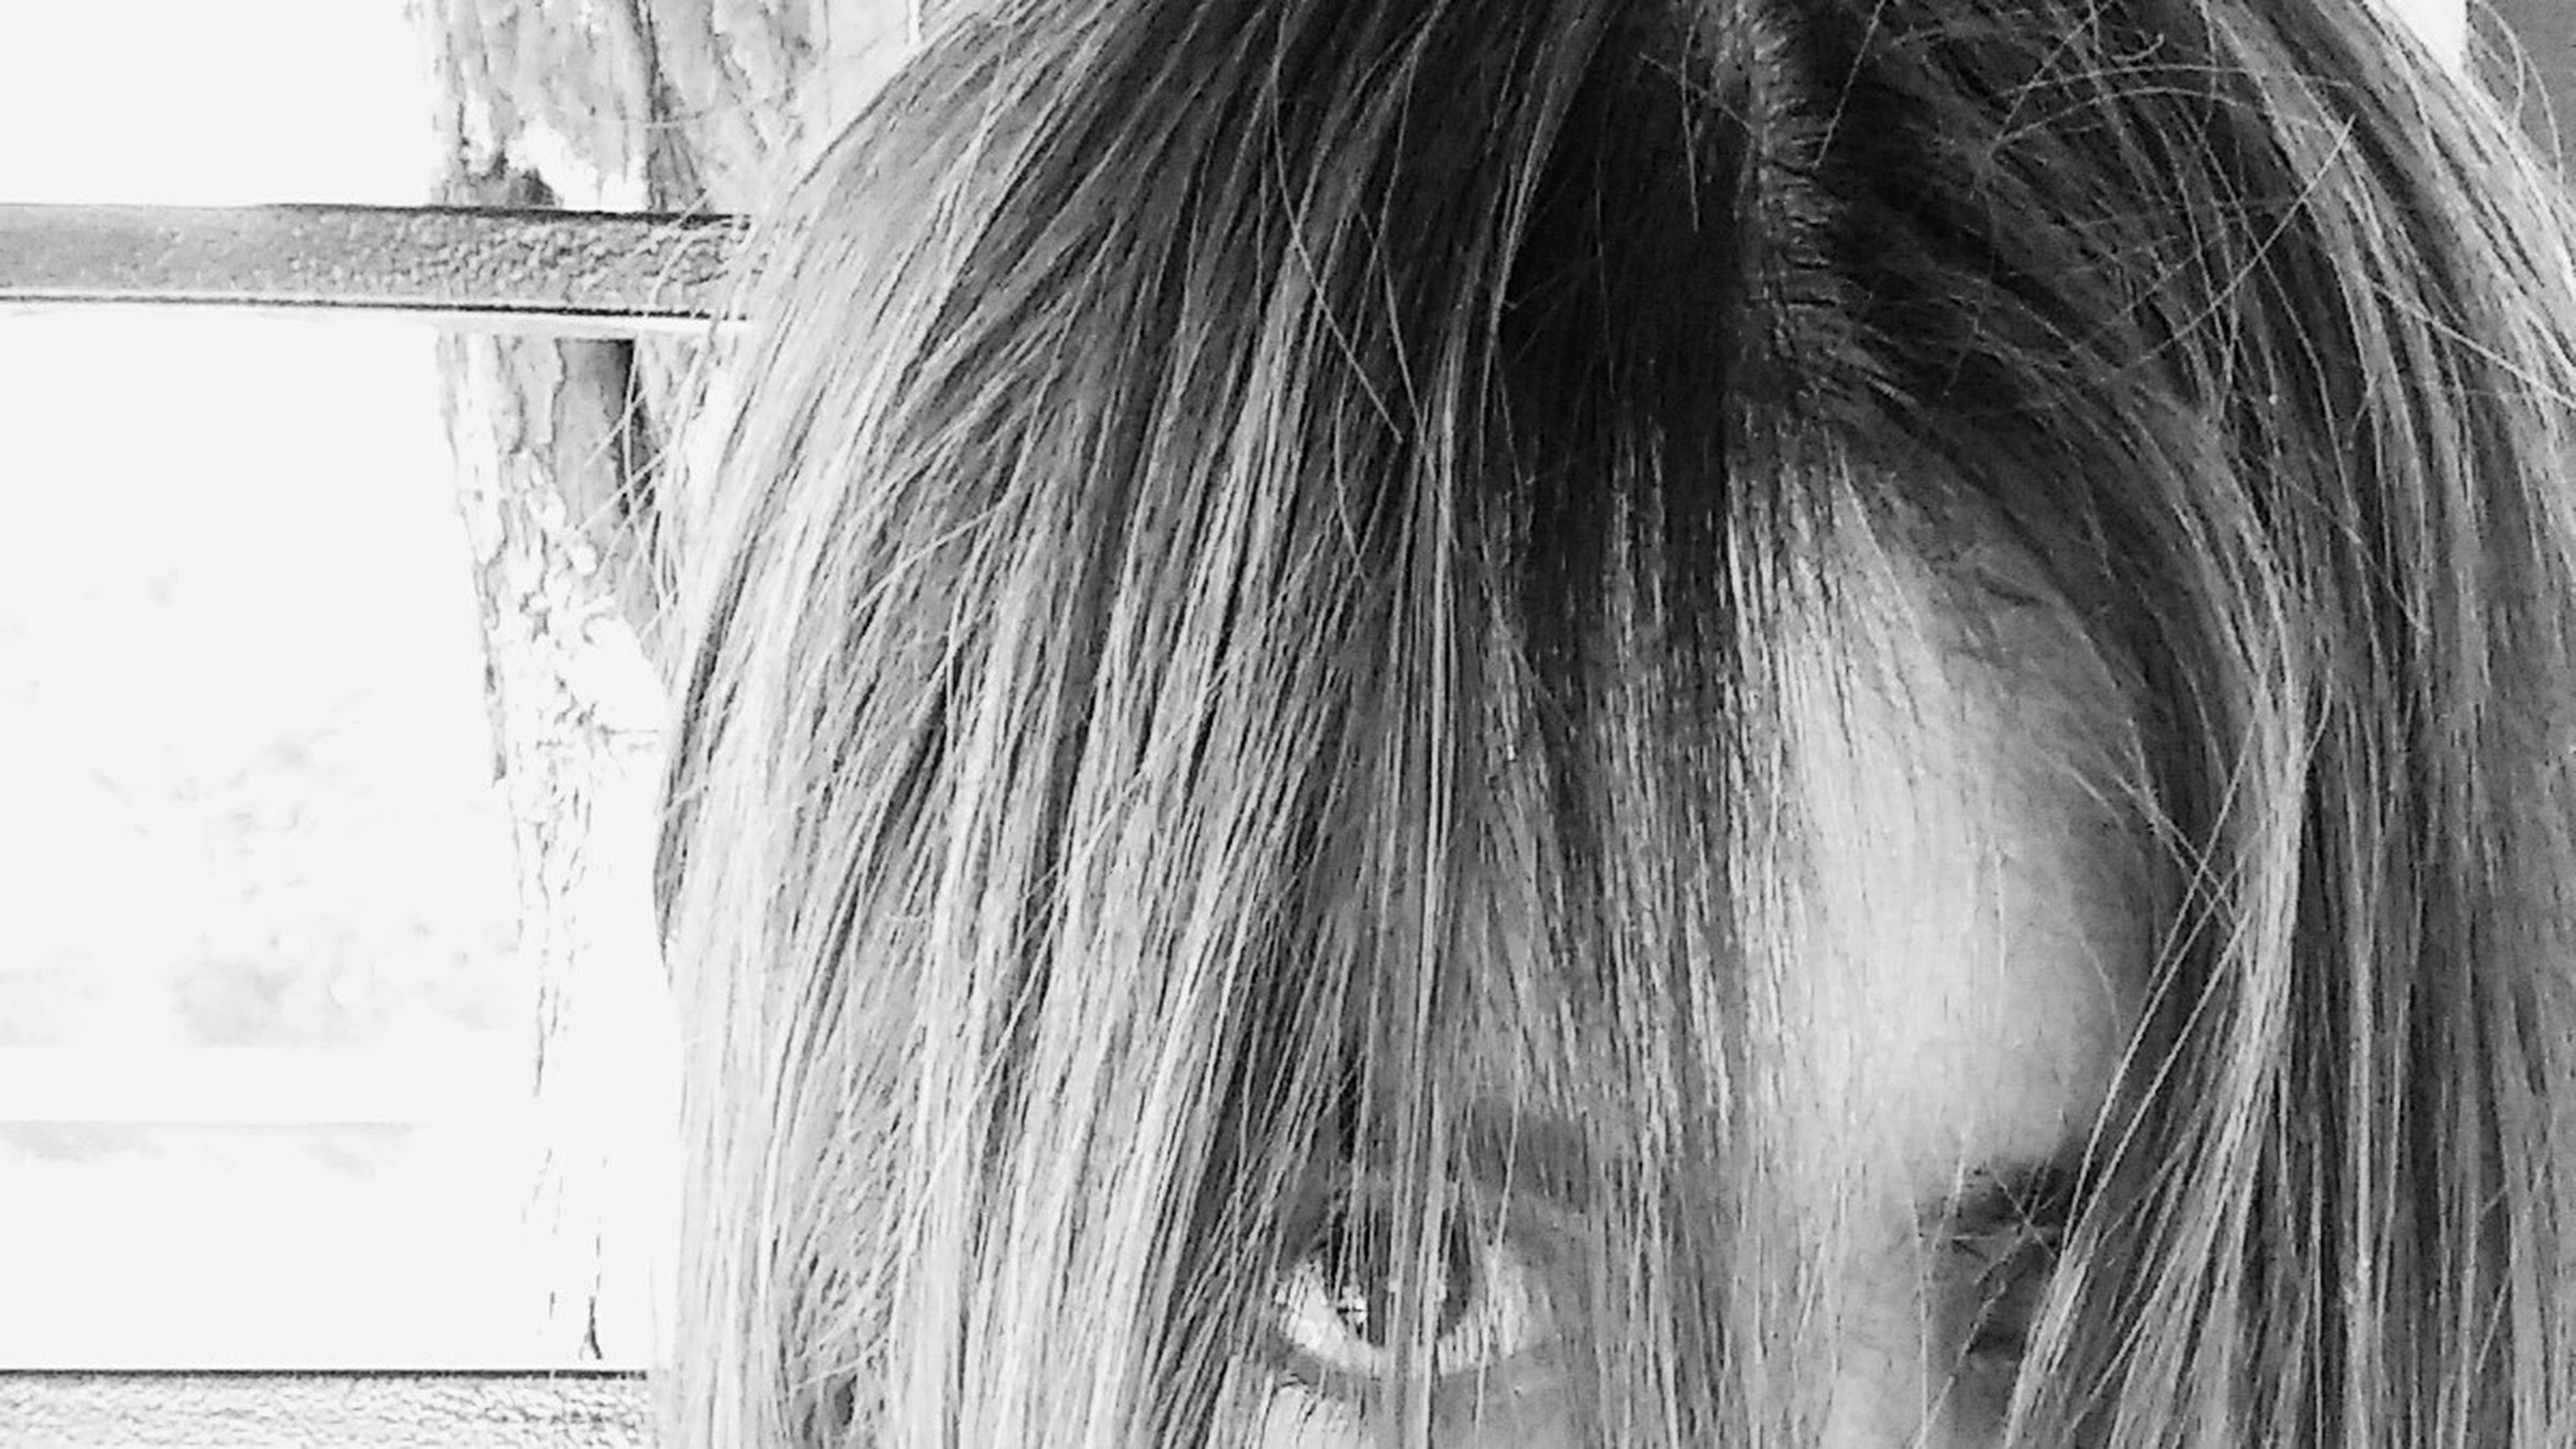 Selfdiscovery project 4. Eyes Hair Blackandwhite Black And White Hairstyles